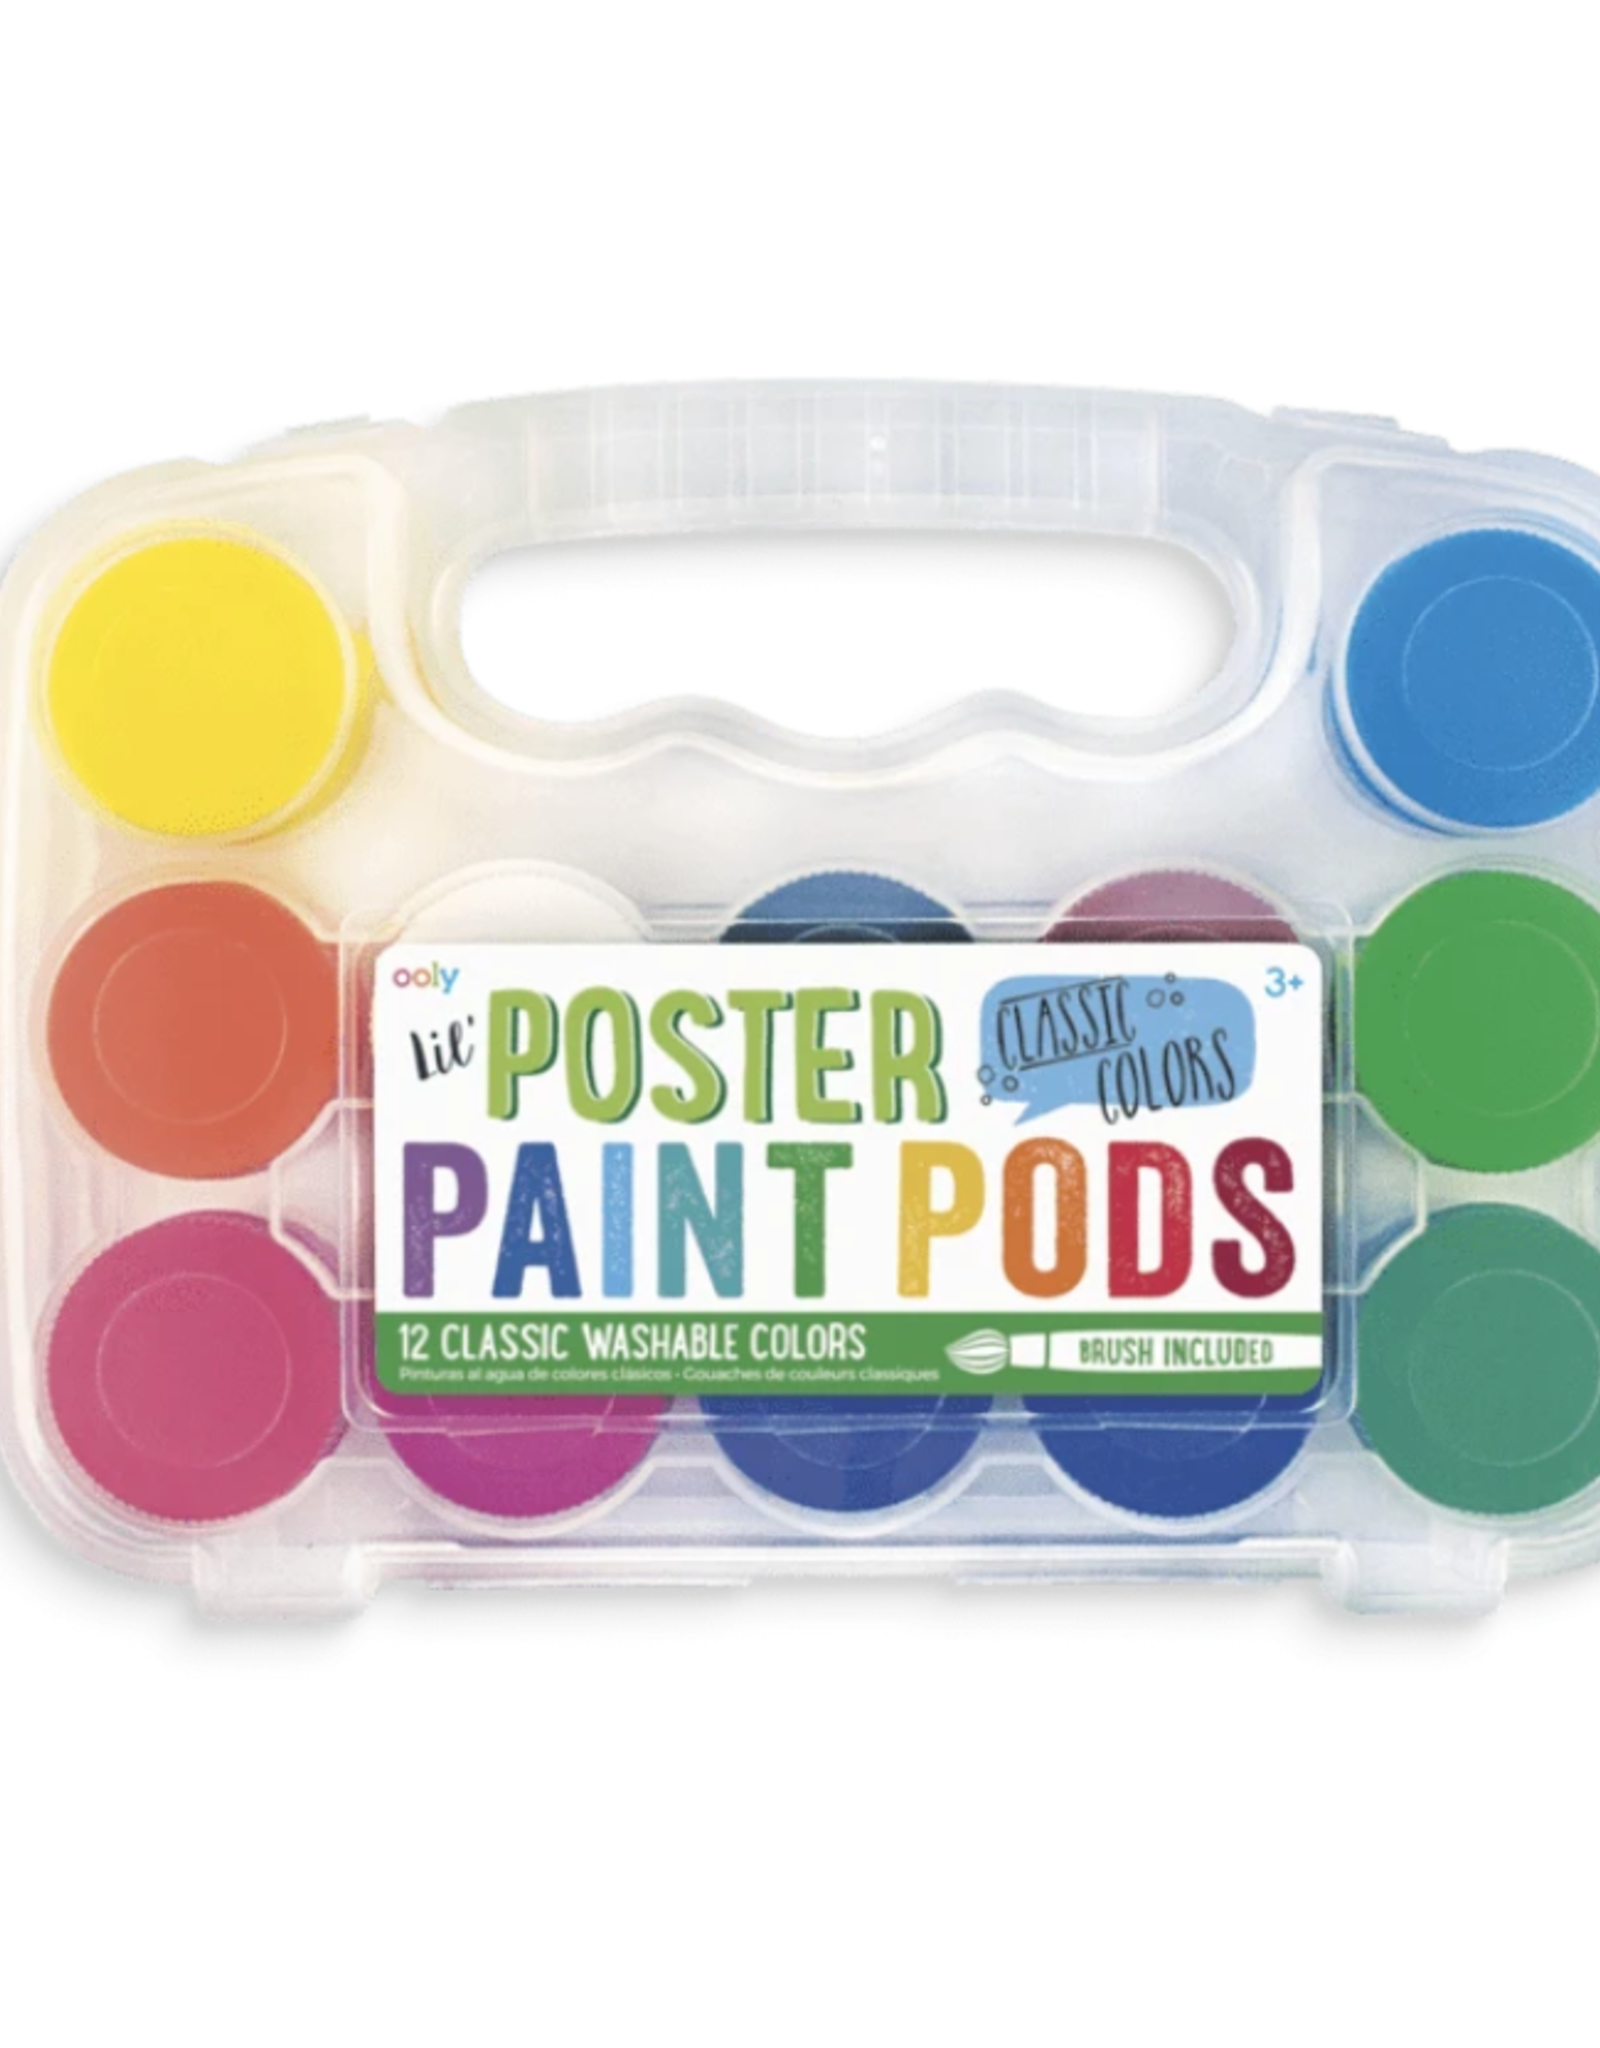 Ooly Ooly | lil' poster paint pods